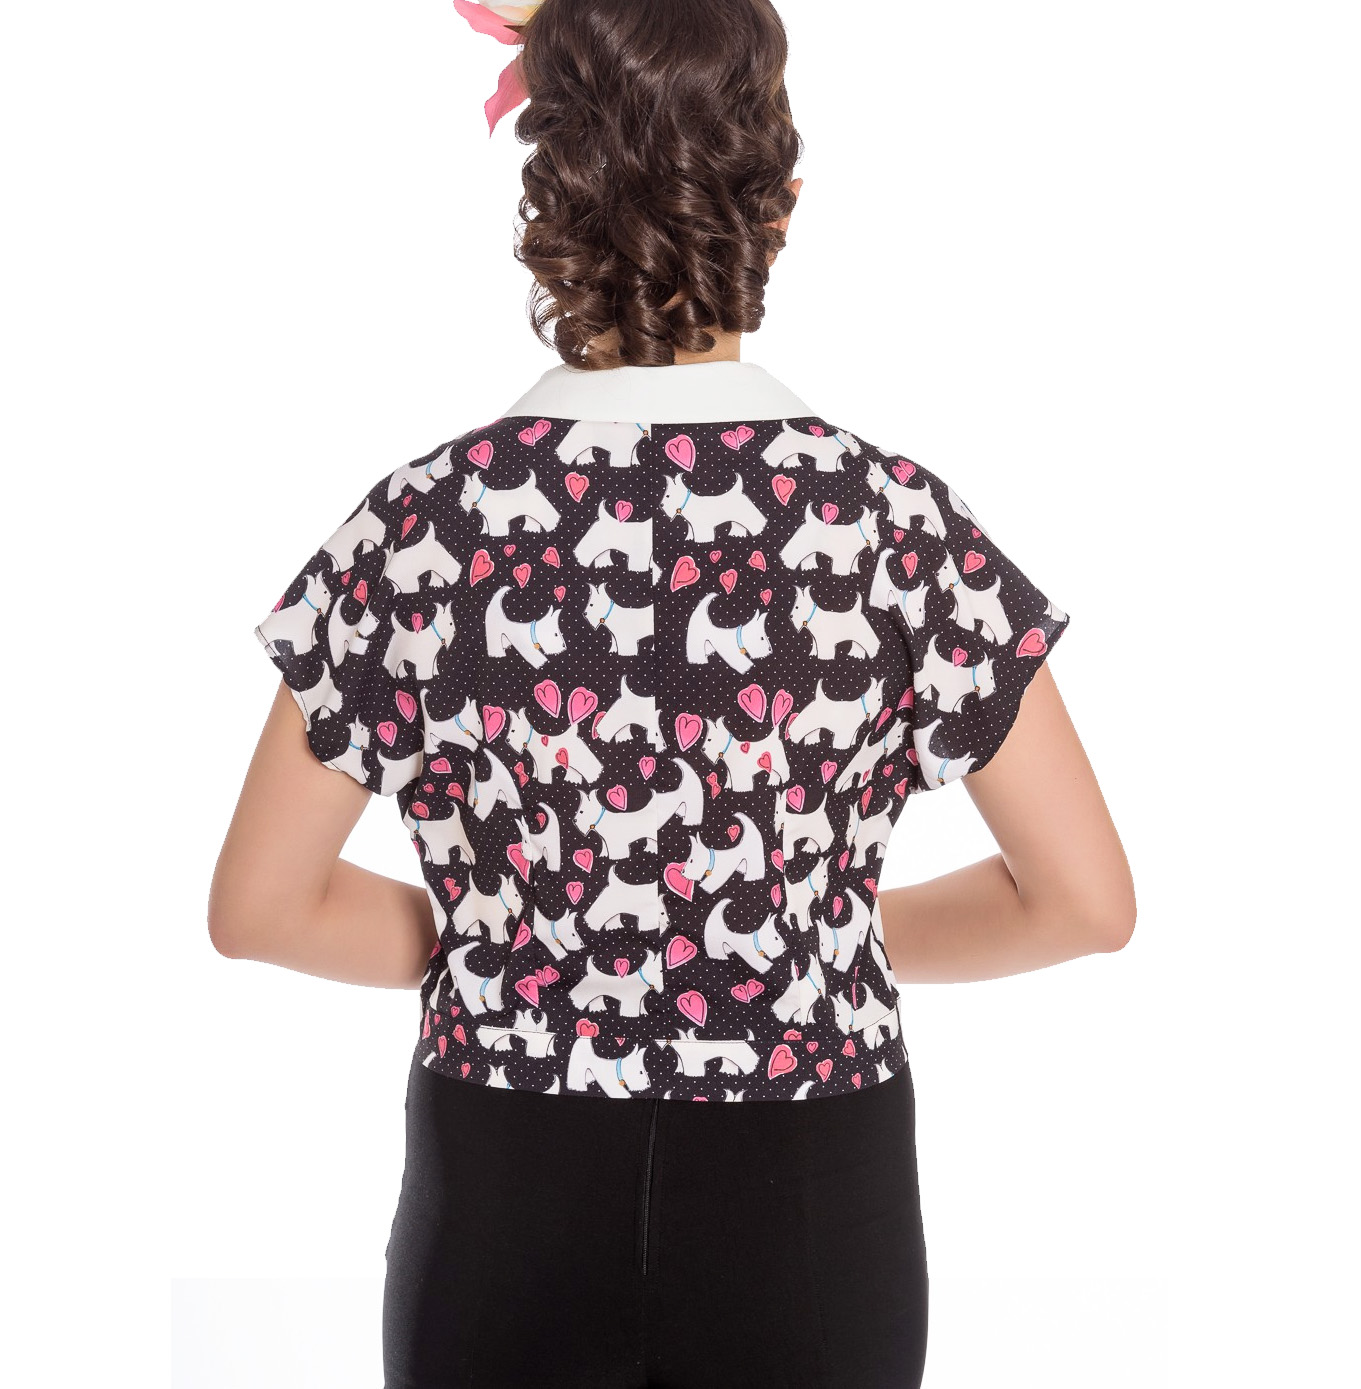 Hell-Bunny-50s-Retro-Top-Scottie-Dog-Heart-AGGY-Cropped-Blouse-Shirt-All-Sizes thumbnail 25